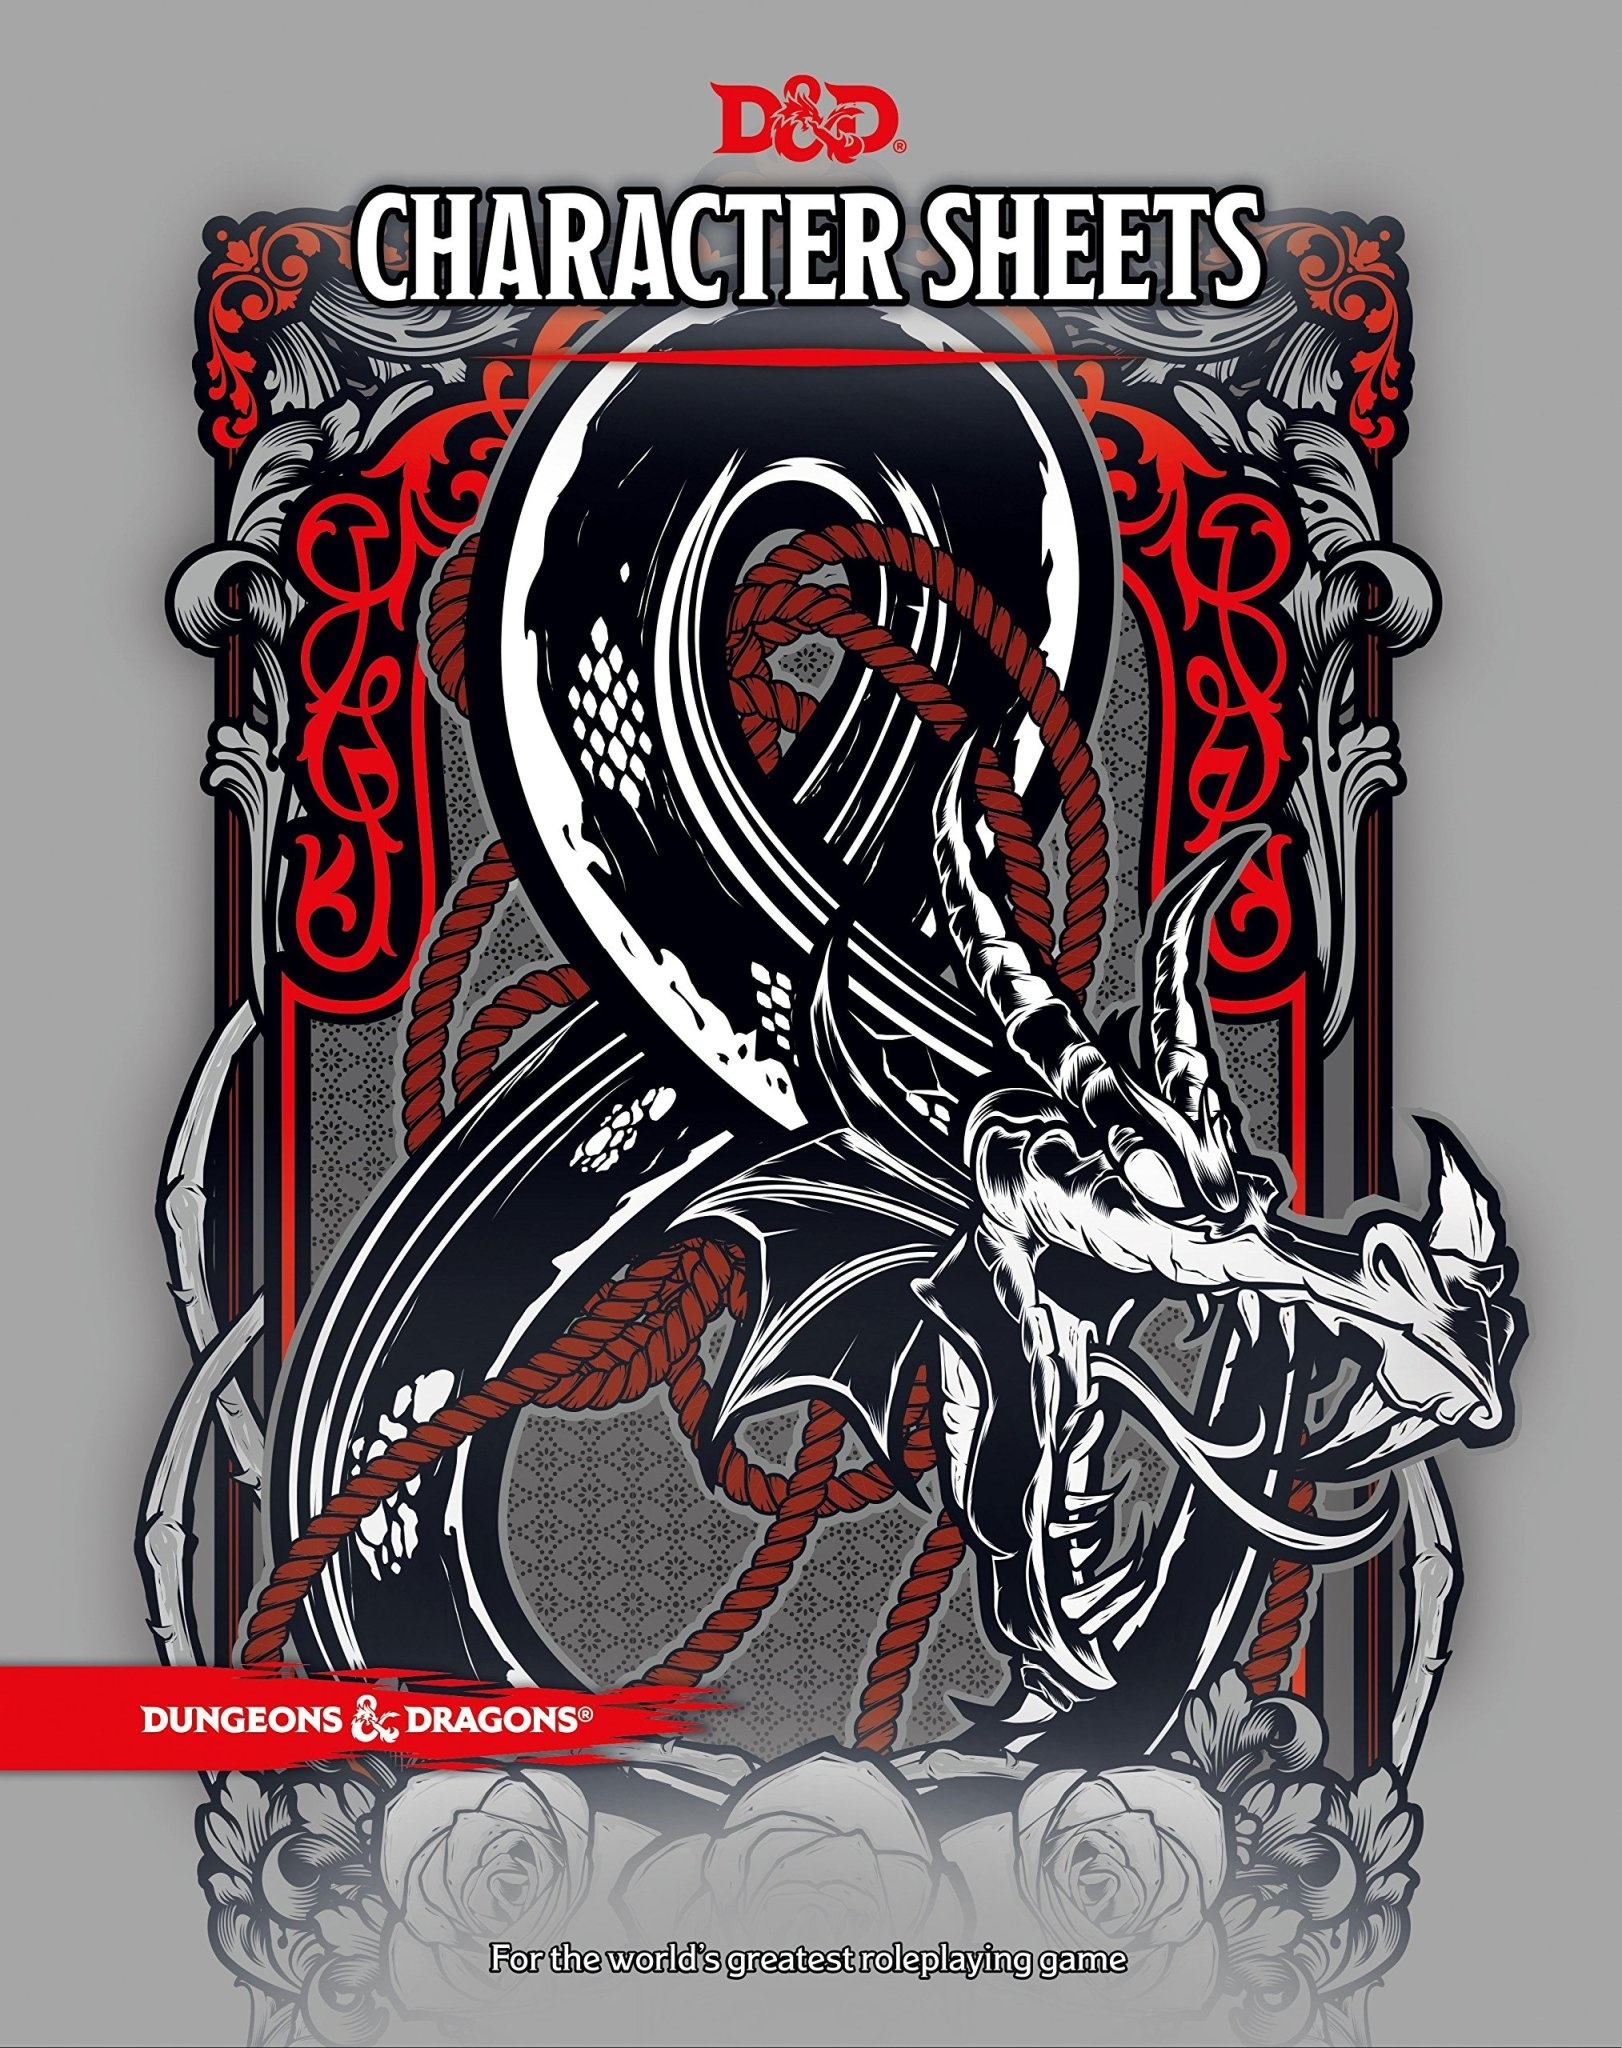 Wizards of the Coast DND CHARACTER SHEETS